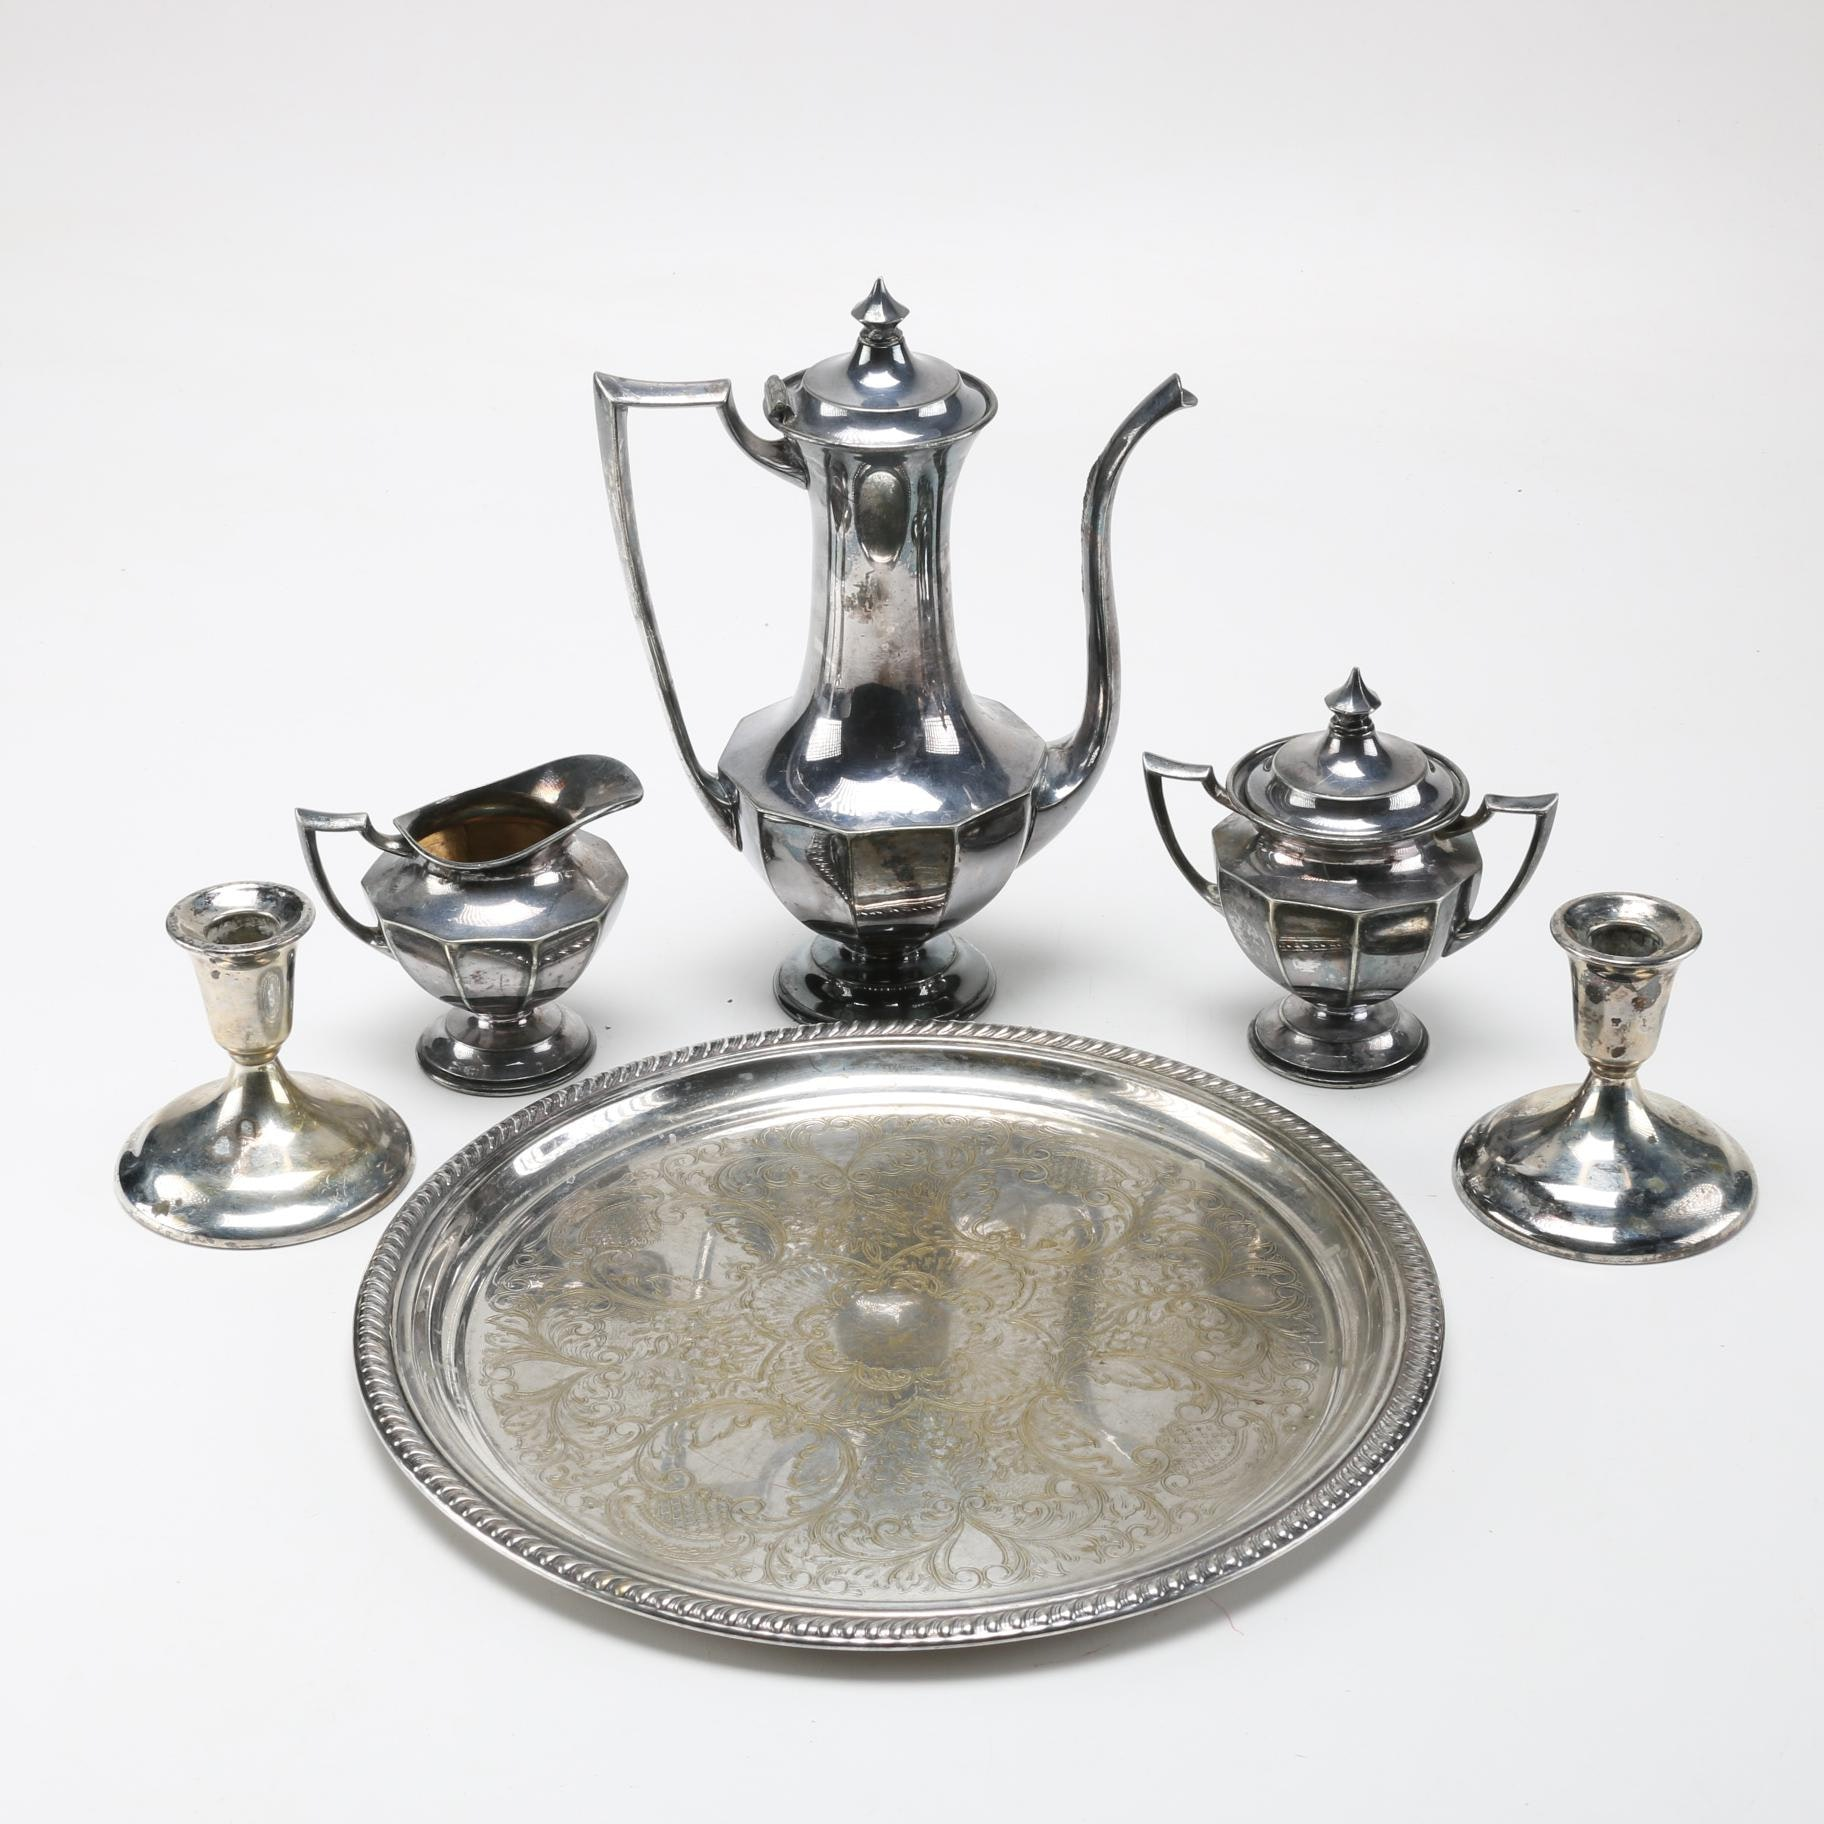 Assortment of Silver Plated Tableware